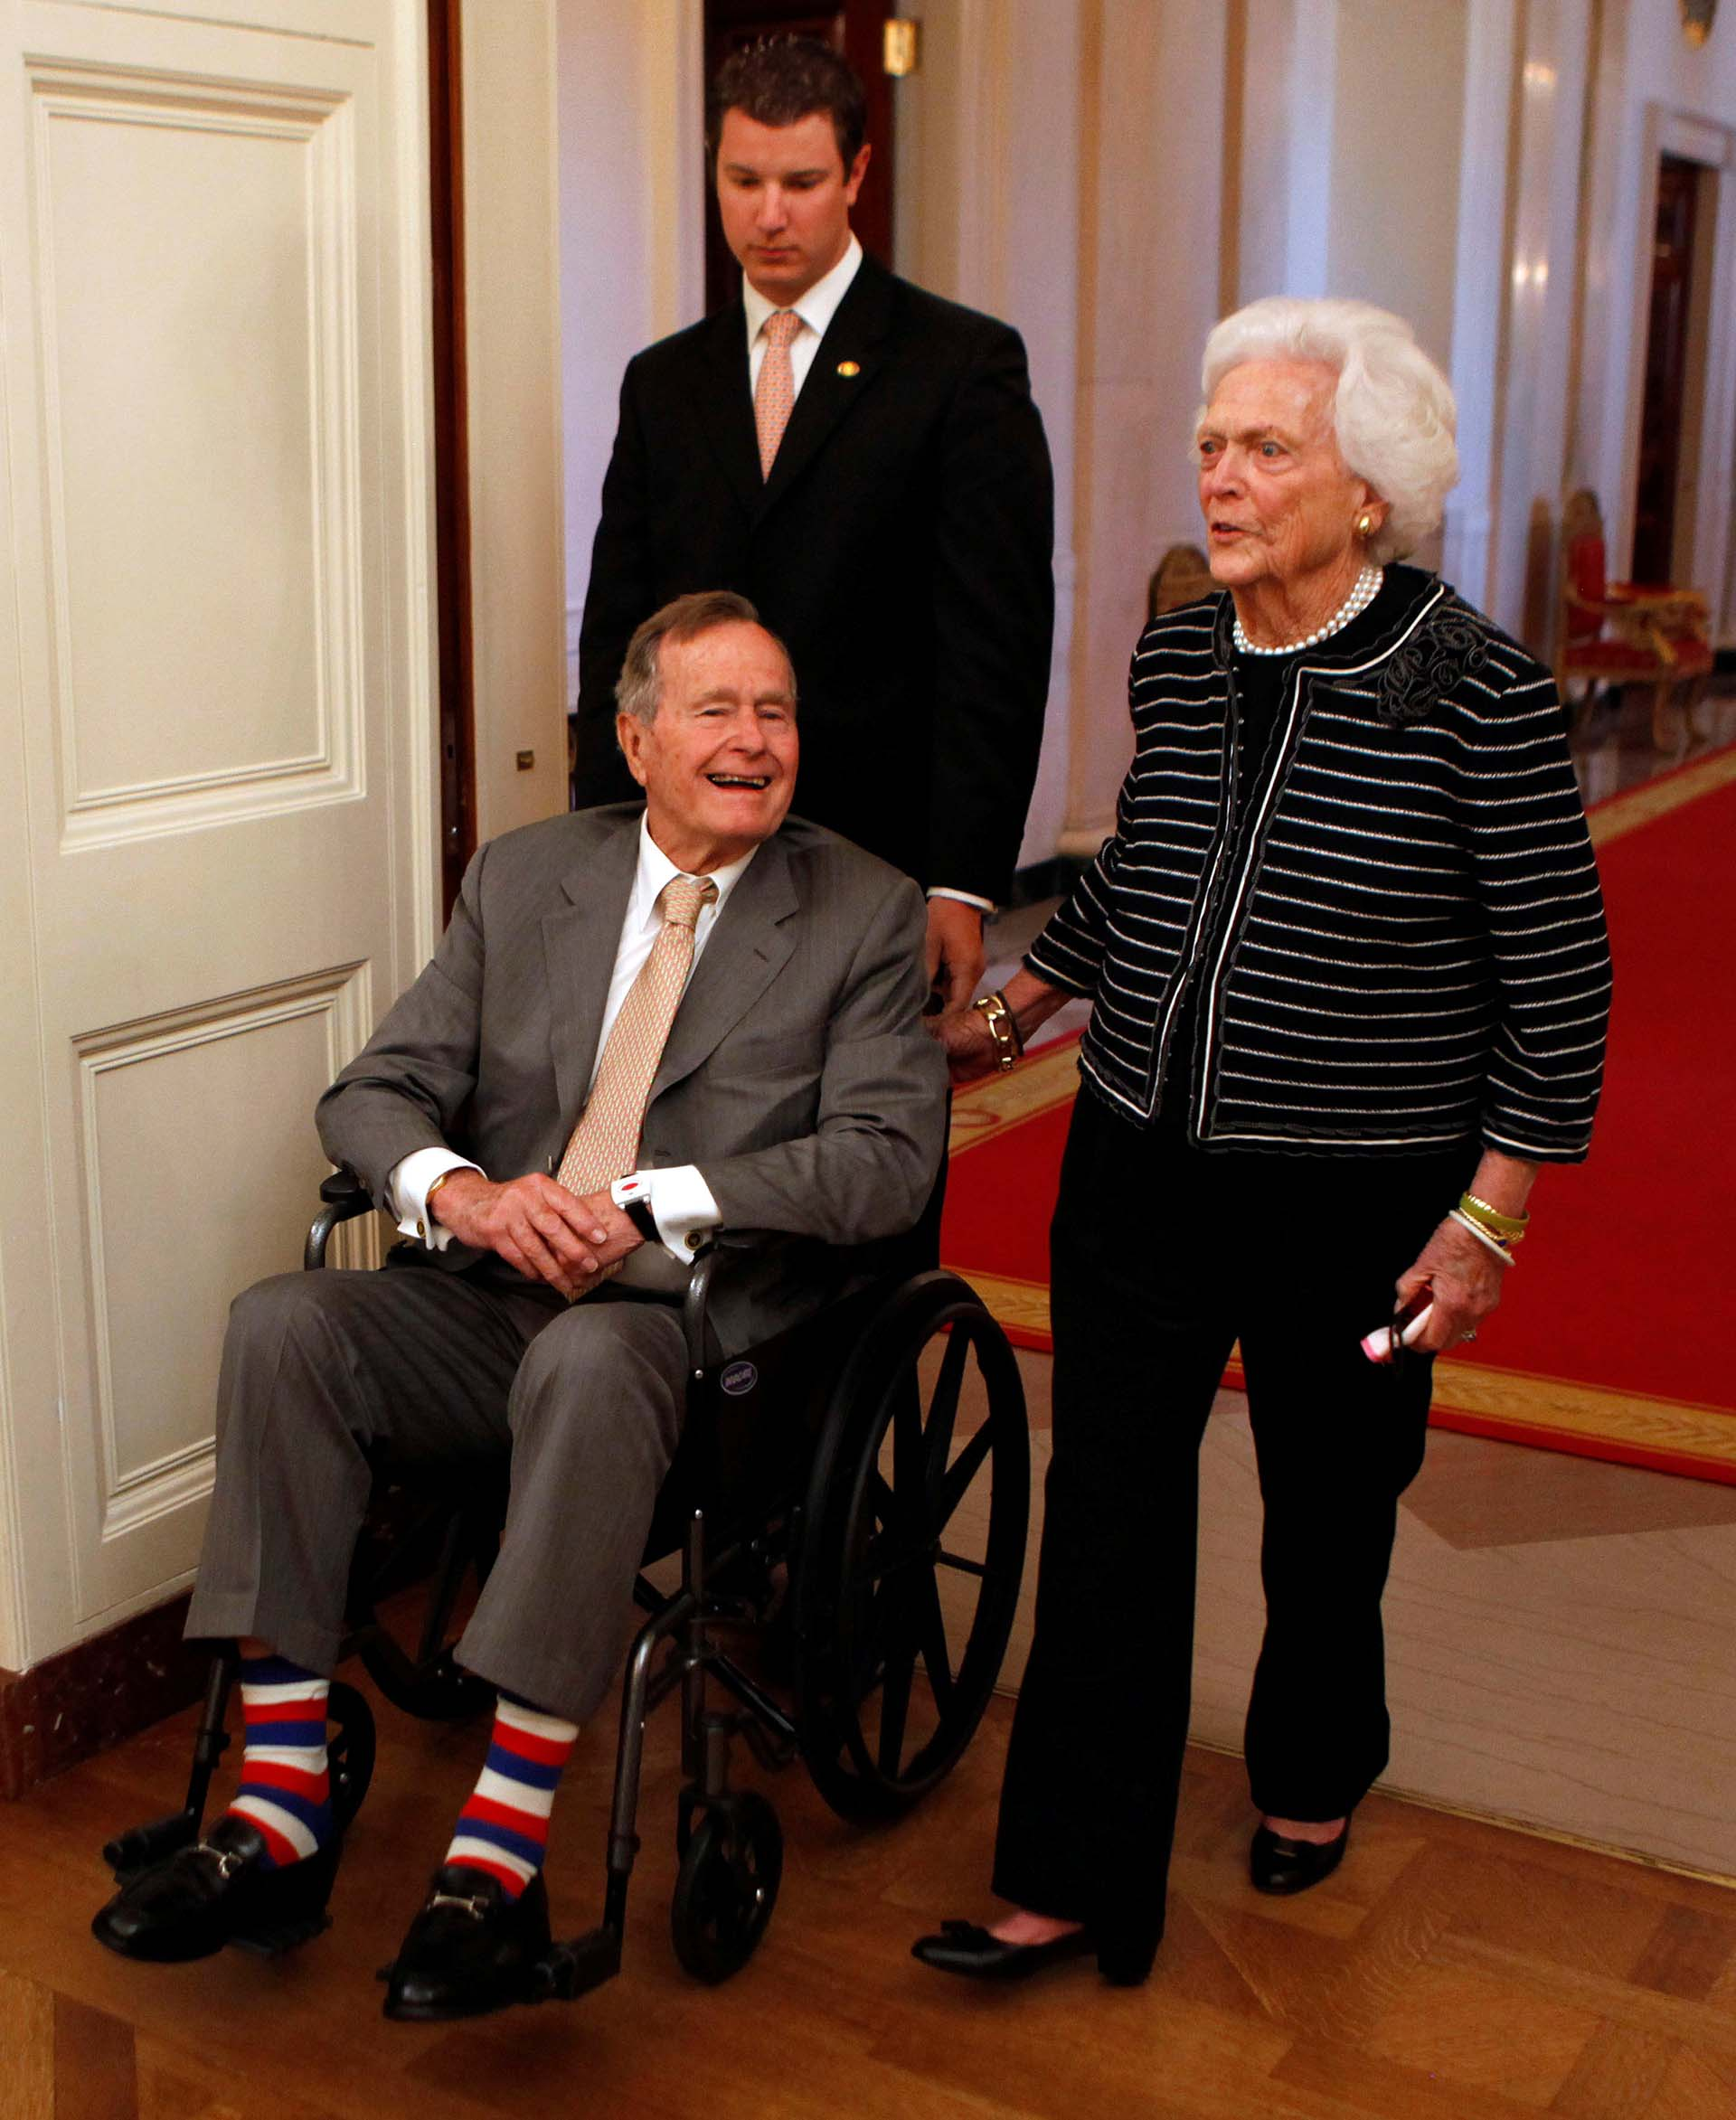 Con el ex presidente George H. Bush antes de la ceremonia de los retratos oficiales del ex presidente George W. Bush y la ex primera dama Laura Bush en Washington, en 2012. (REUTERS/Larry Downing)